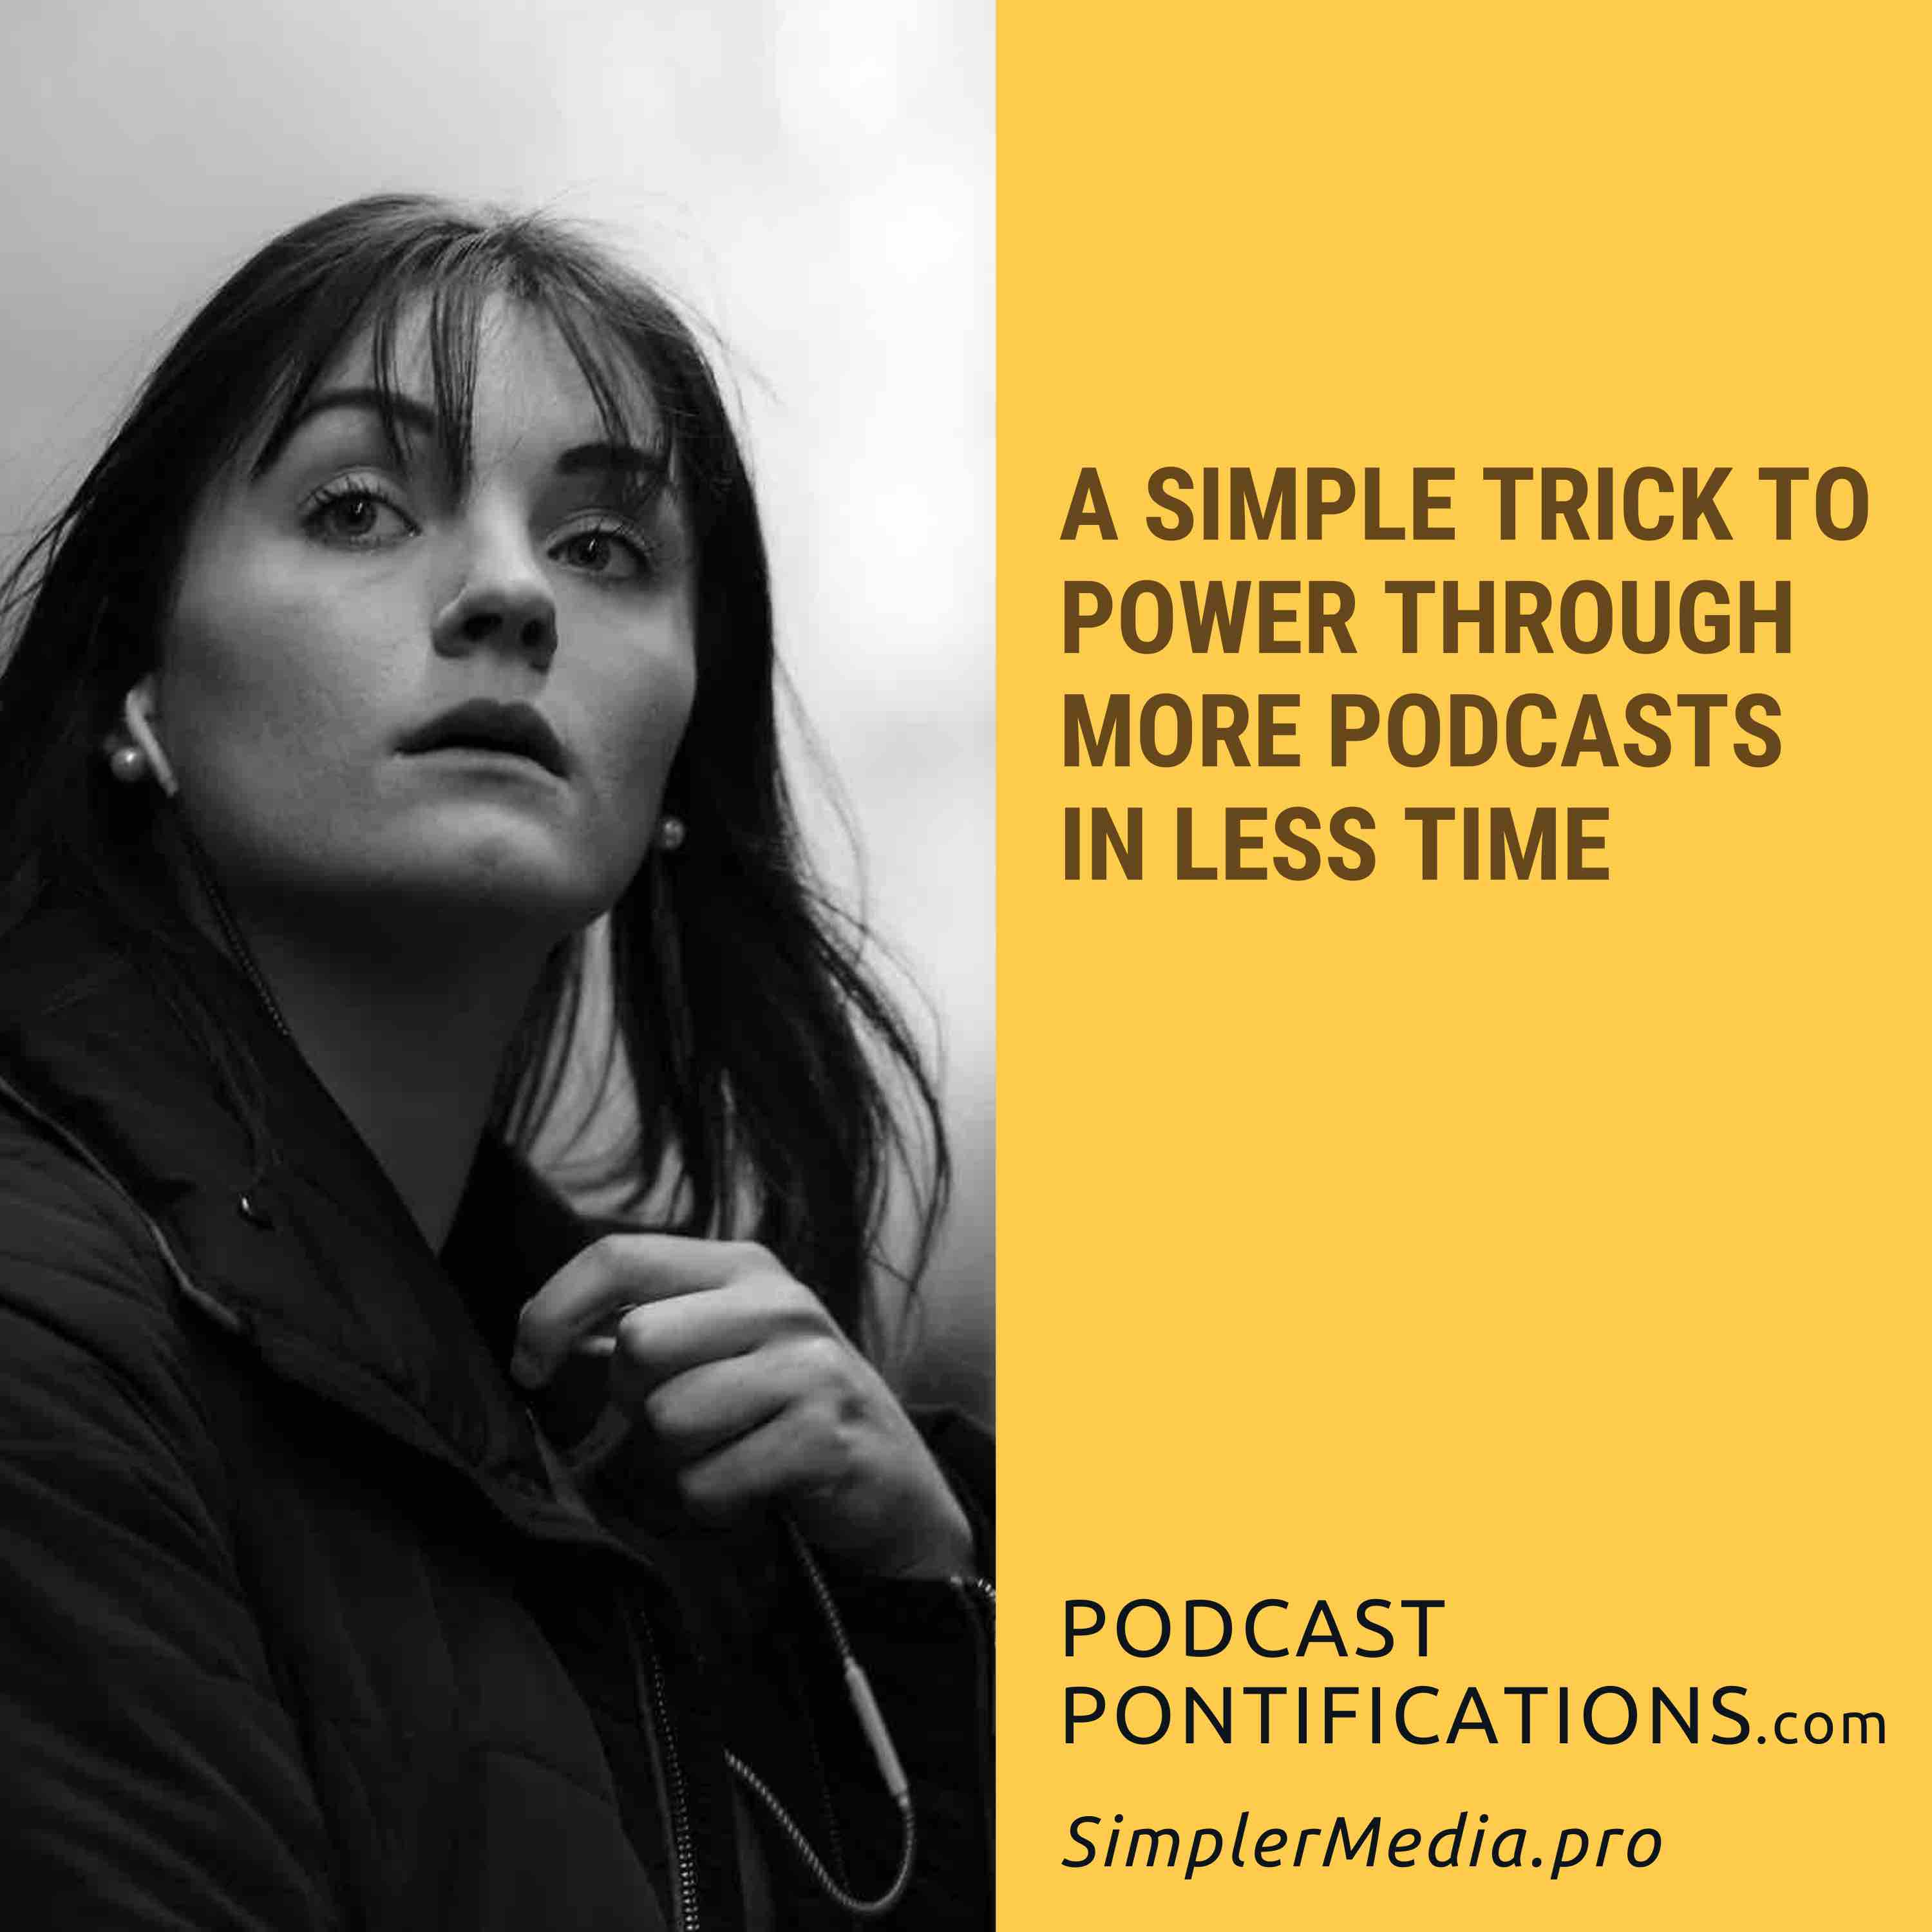 Artwork for podcast Podcast Pontifications